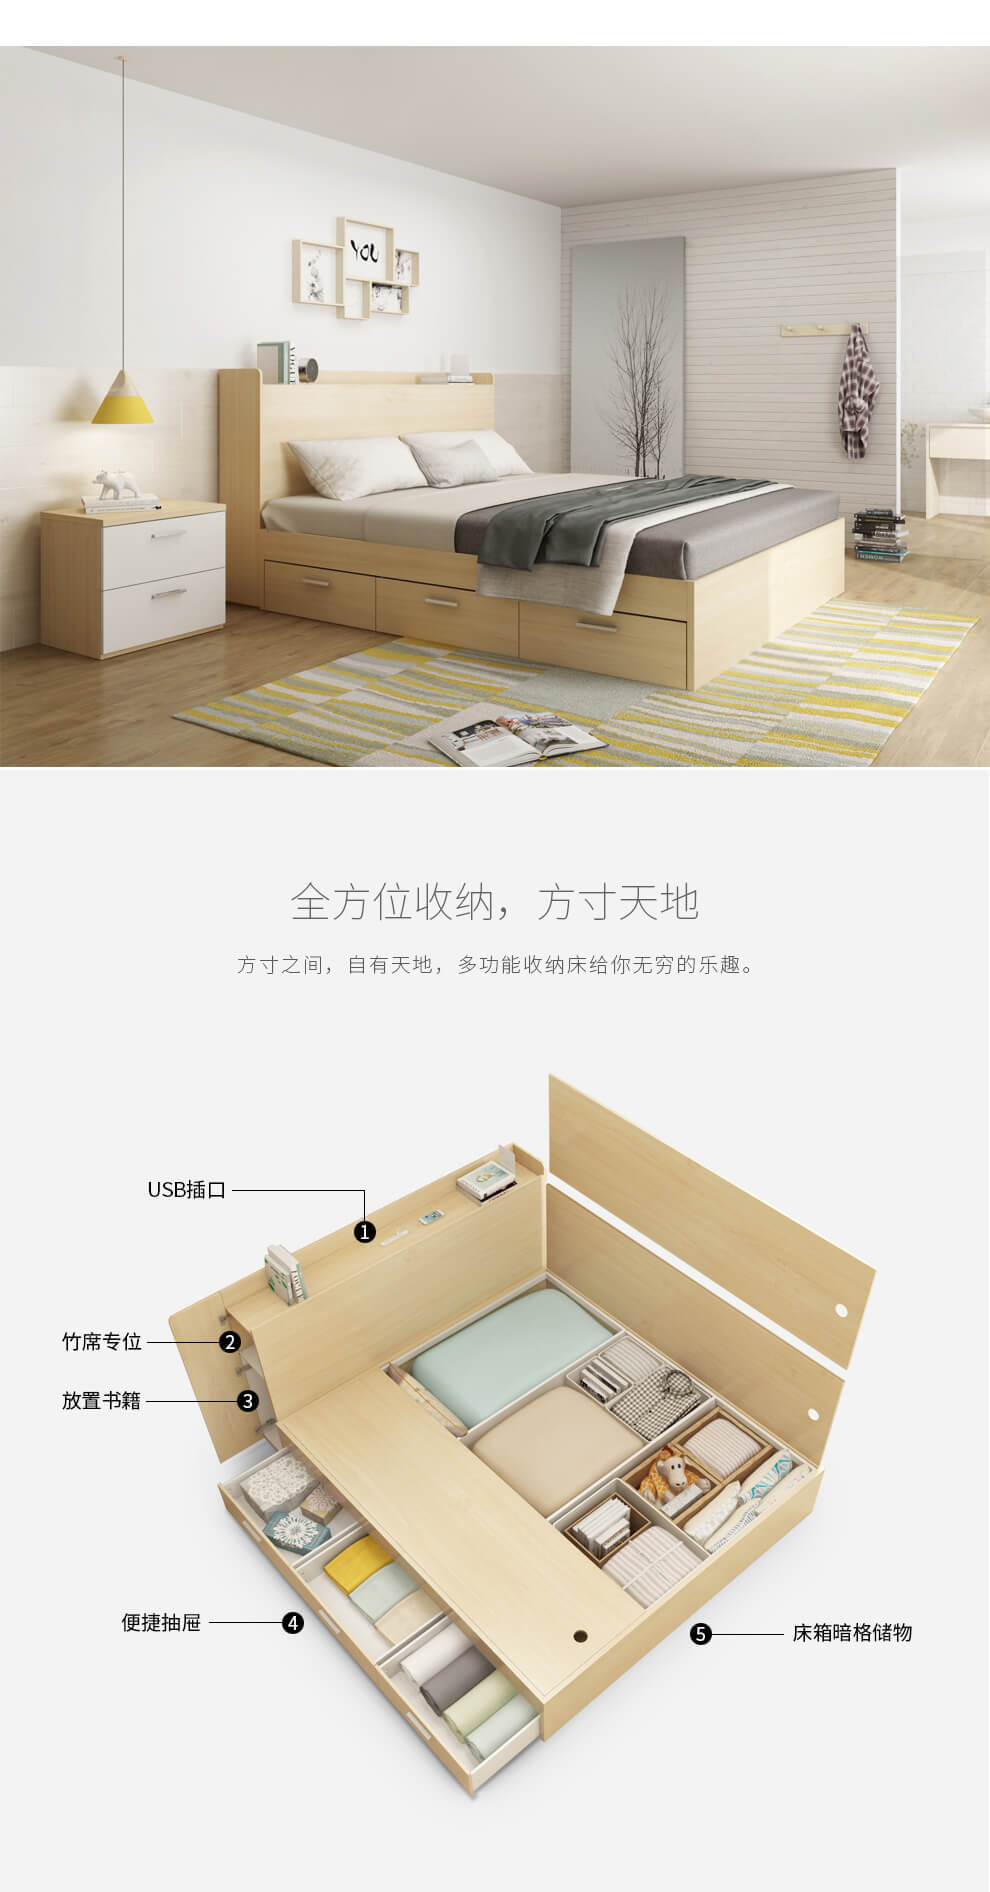 Storage Space in Interior Design - Tatami storage bed